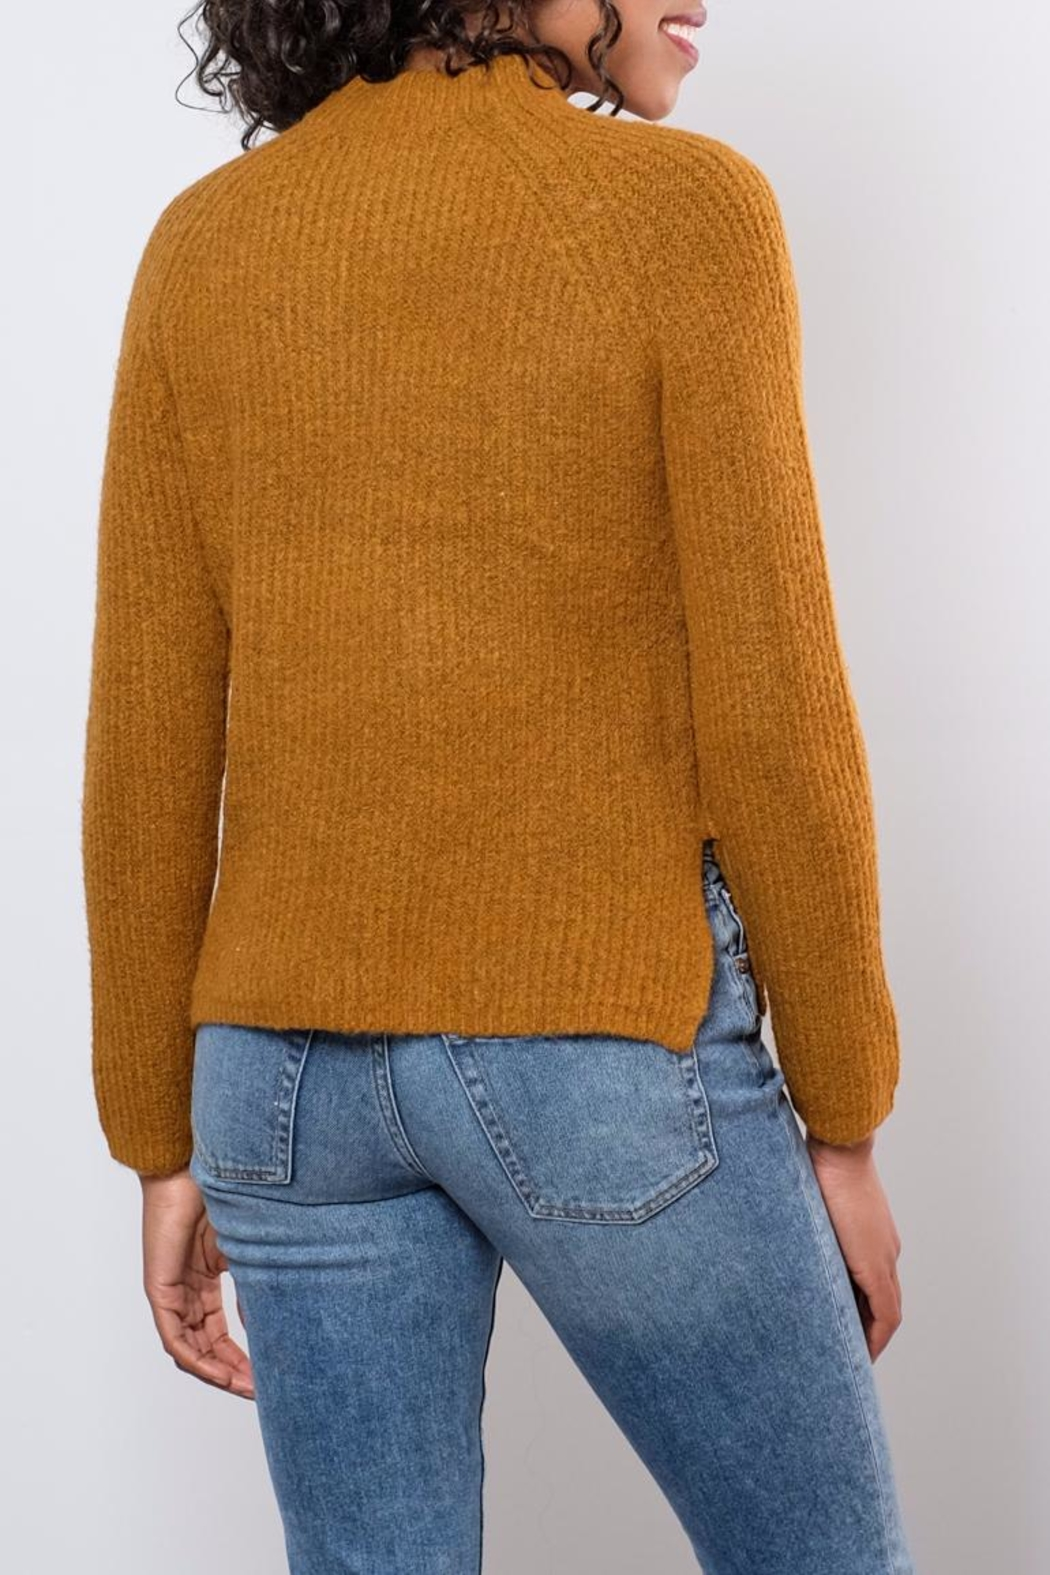 B.young Plush Sweater - Side Cropped Image